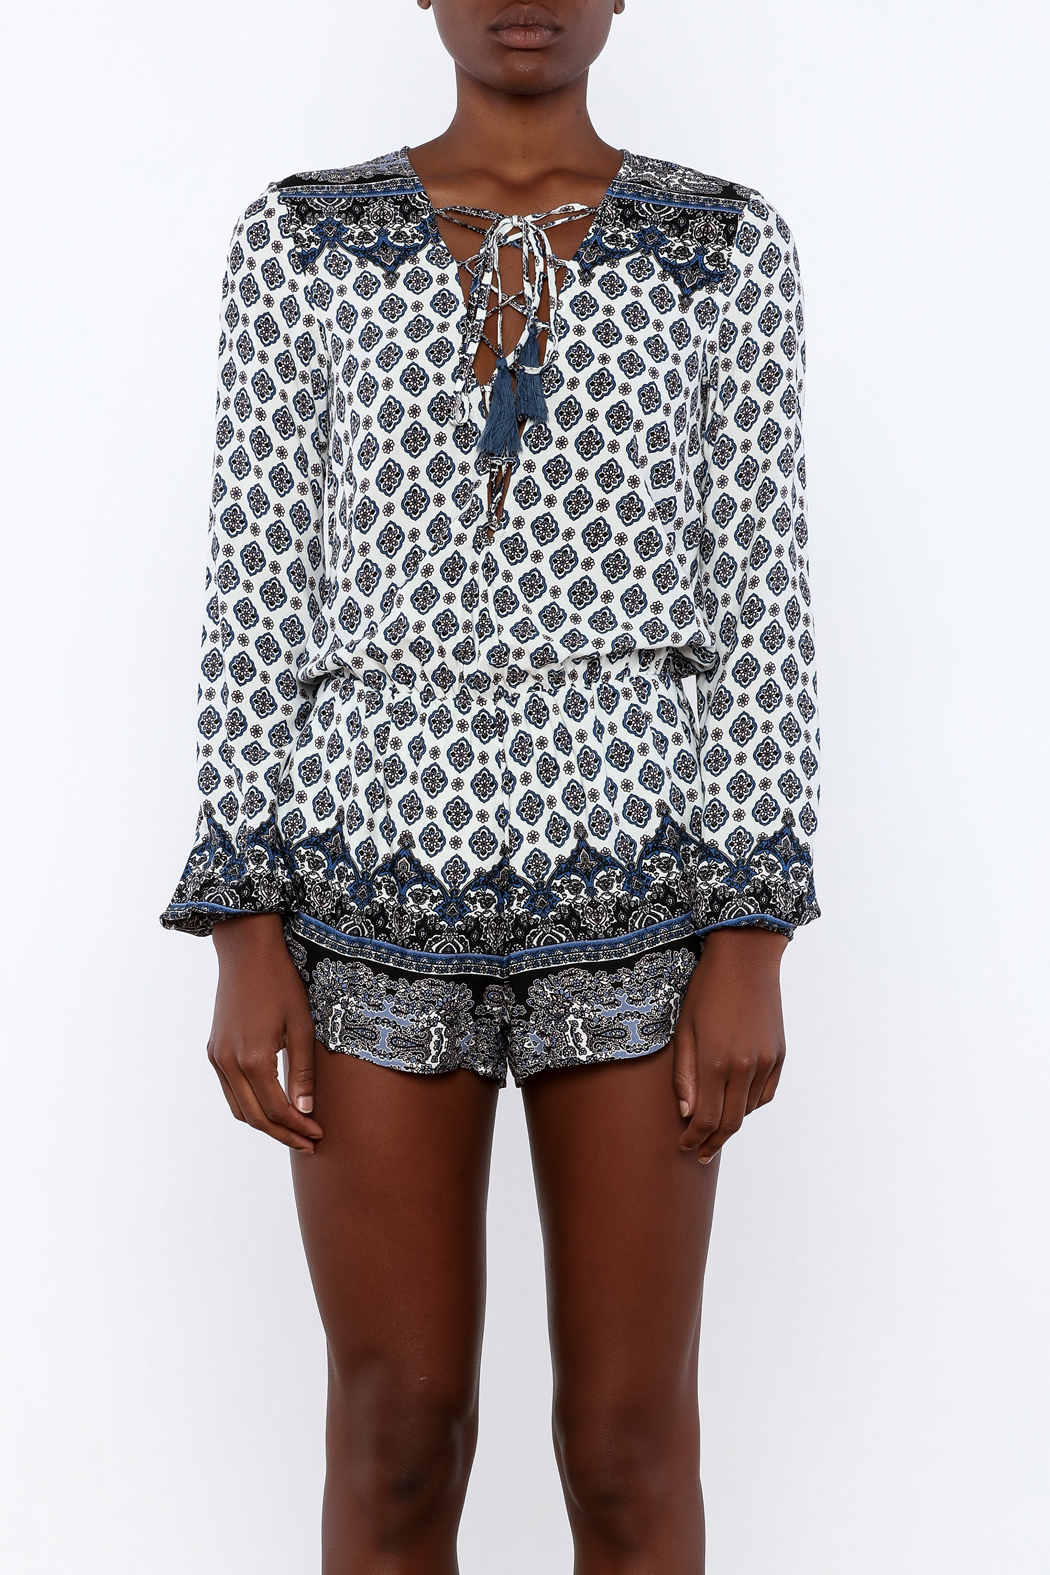 f948fa427 Cotton Candy Boho Babe Romper from New Orleans by Marigny House ...